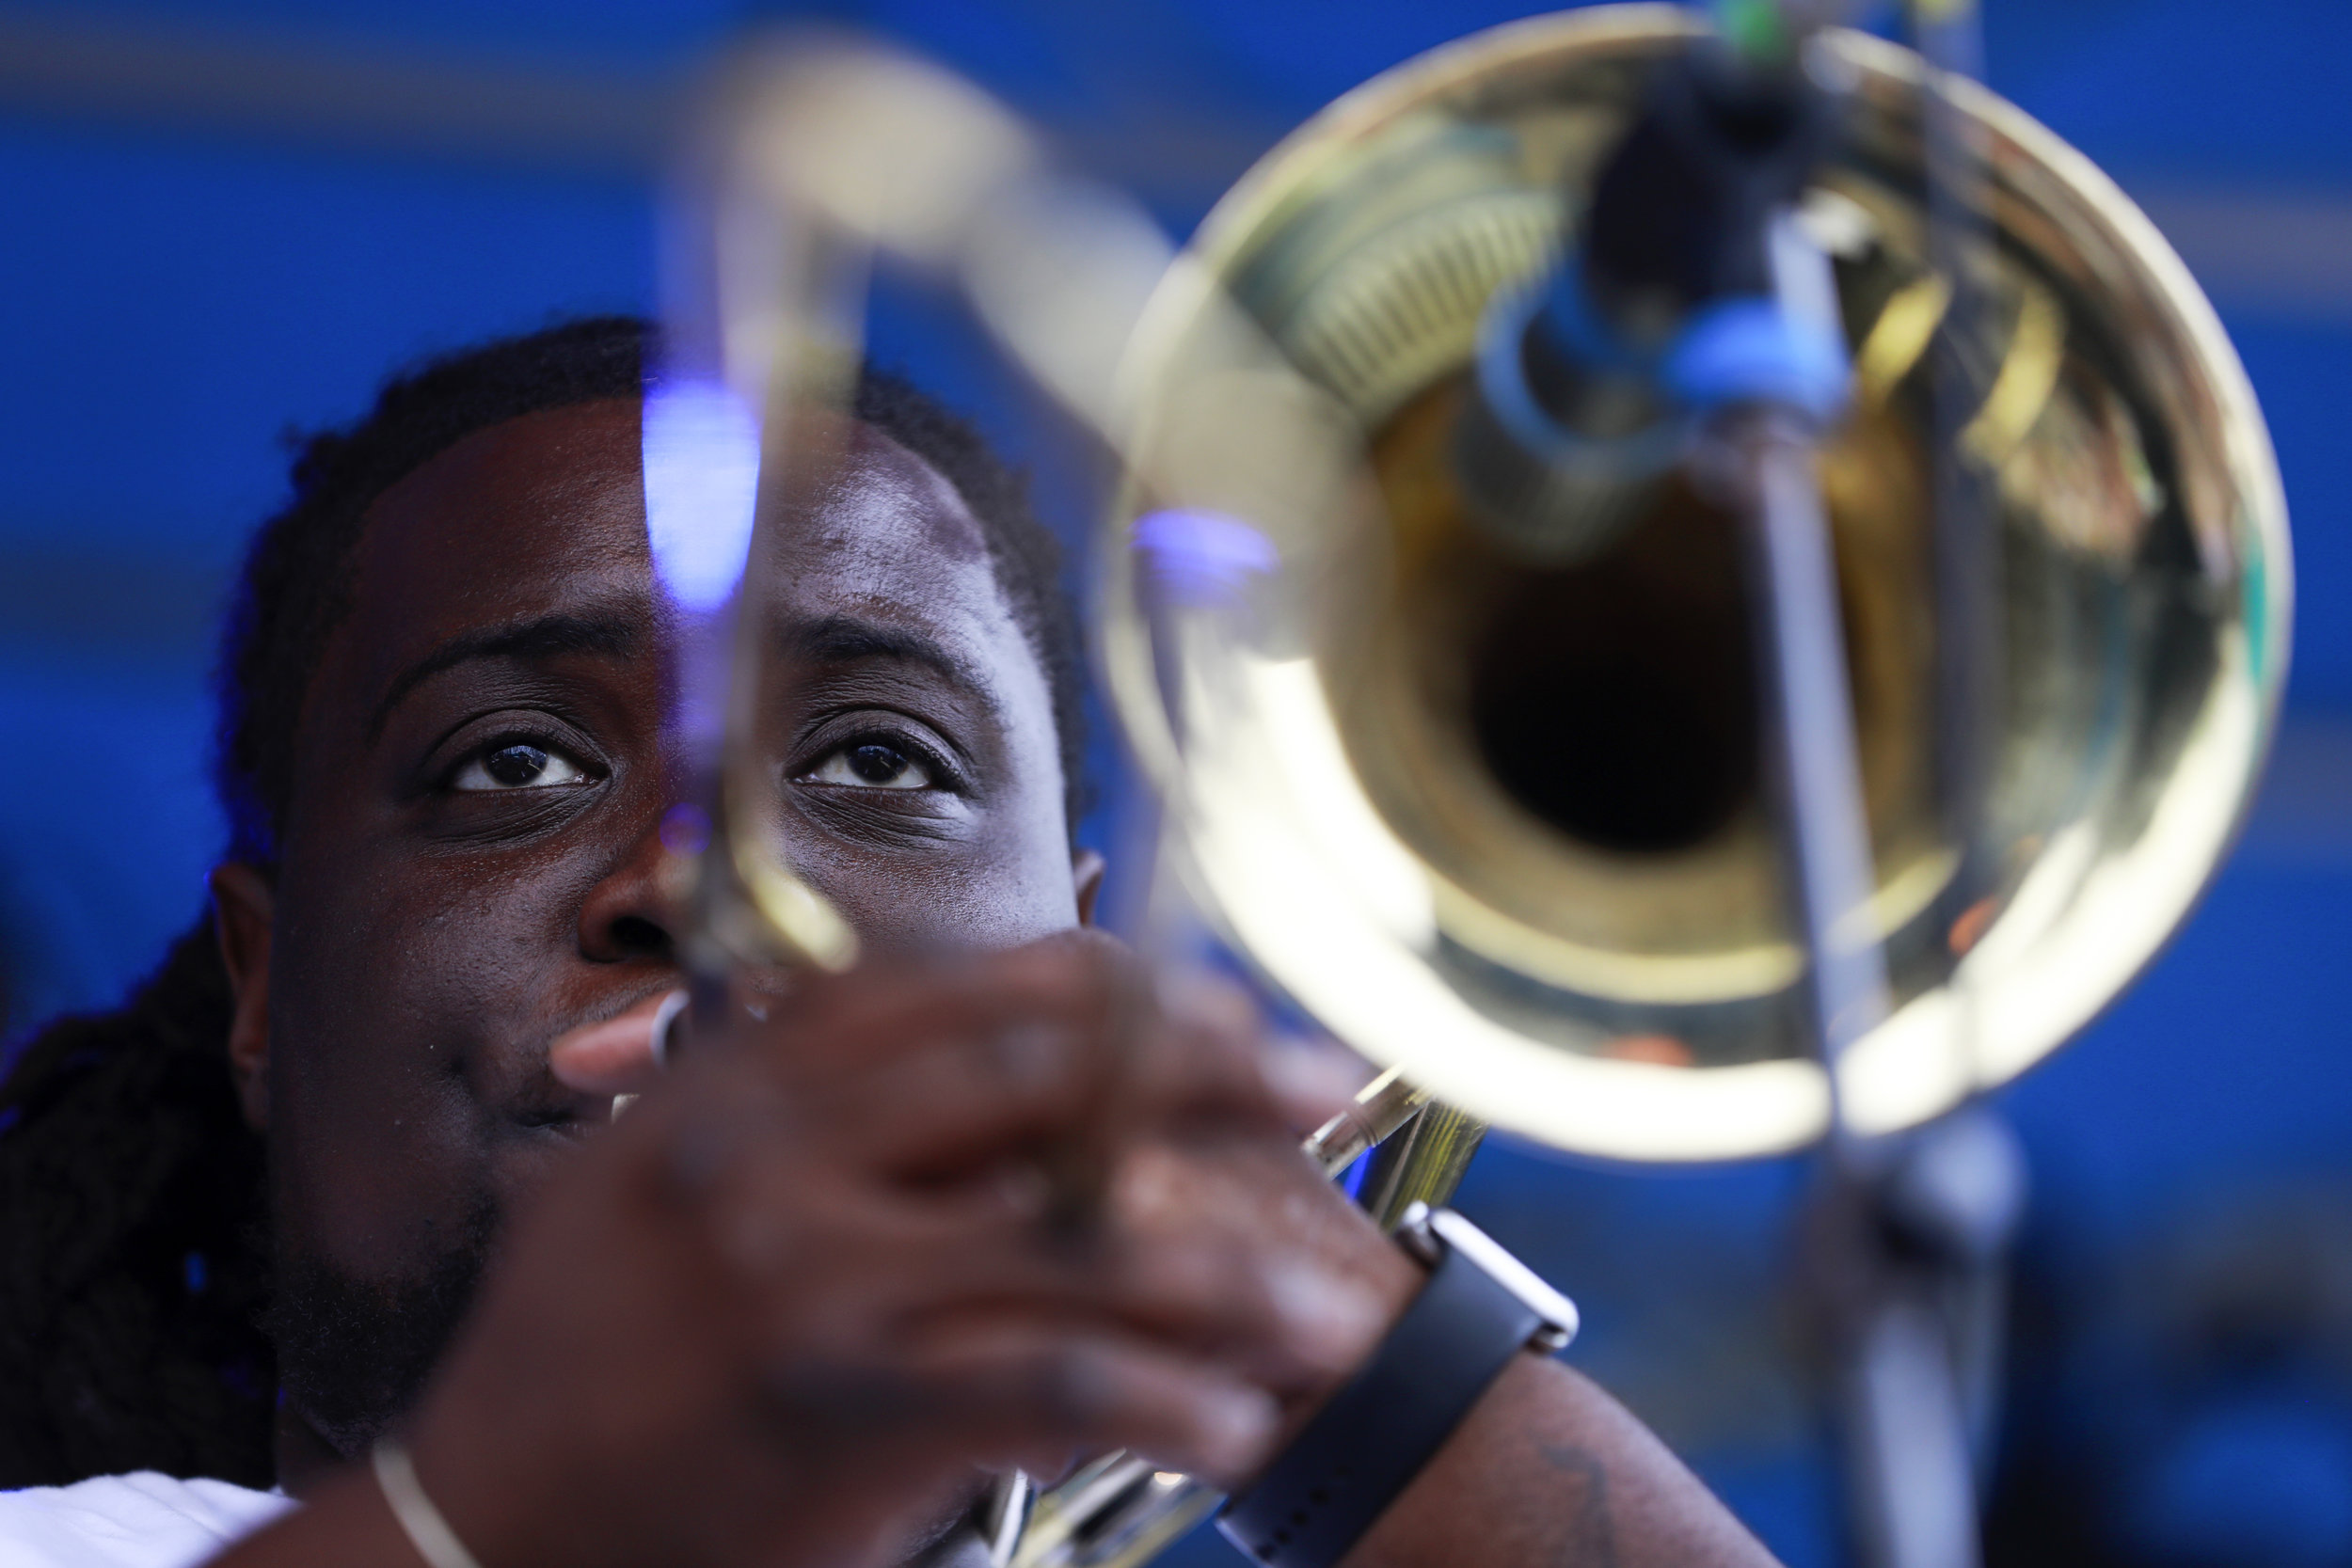 The Hot 8 Brass Band from New Orleans performs at Sesh Stage presented by Two Parts on July 28 at the 18th annual Underground Music Showcase in Denver. Photo by Alyson McClaran